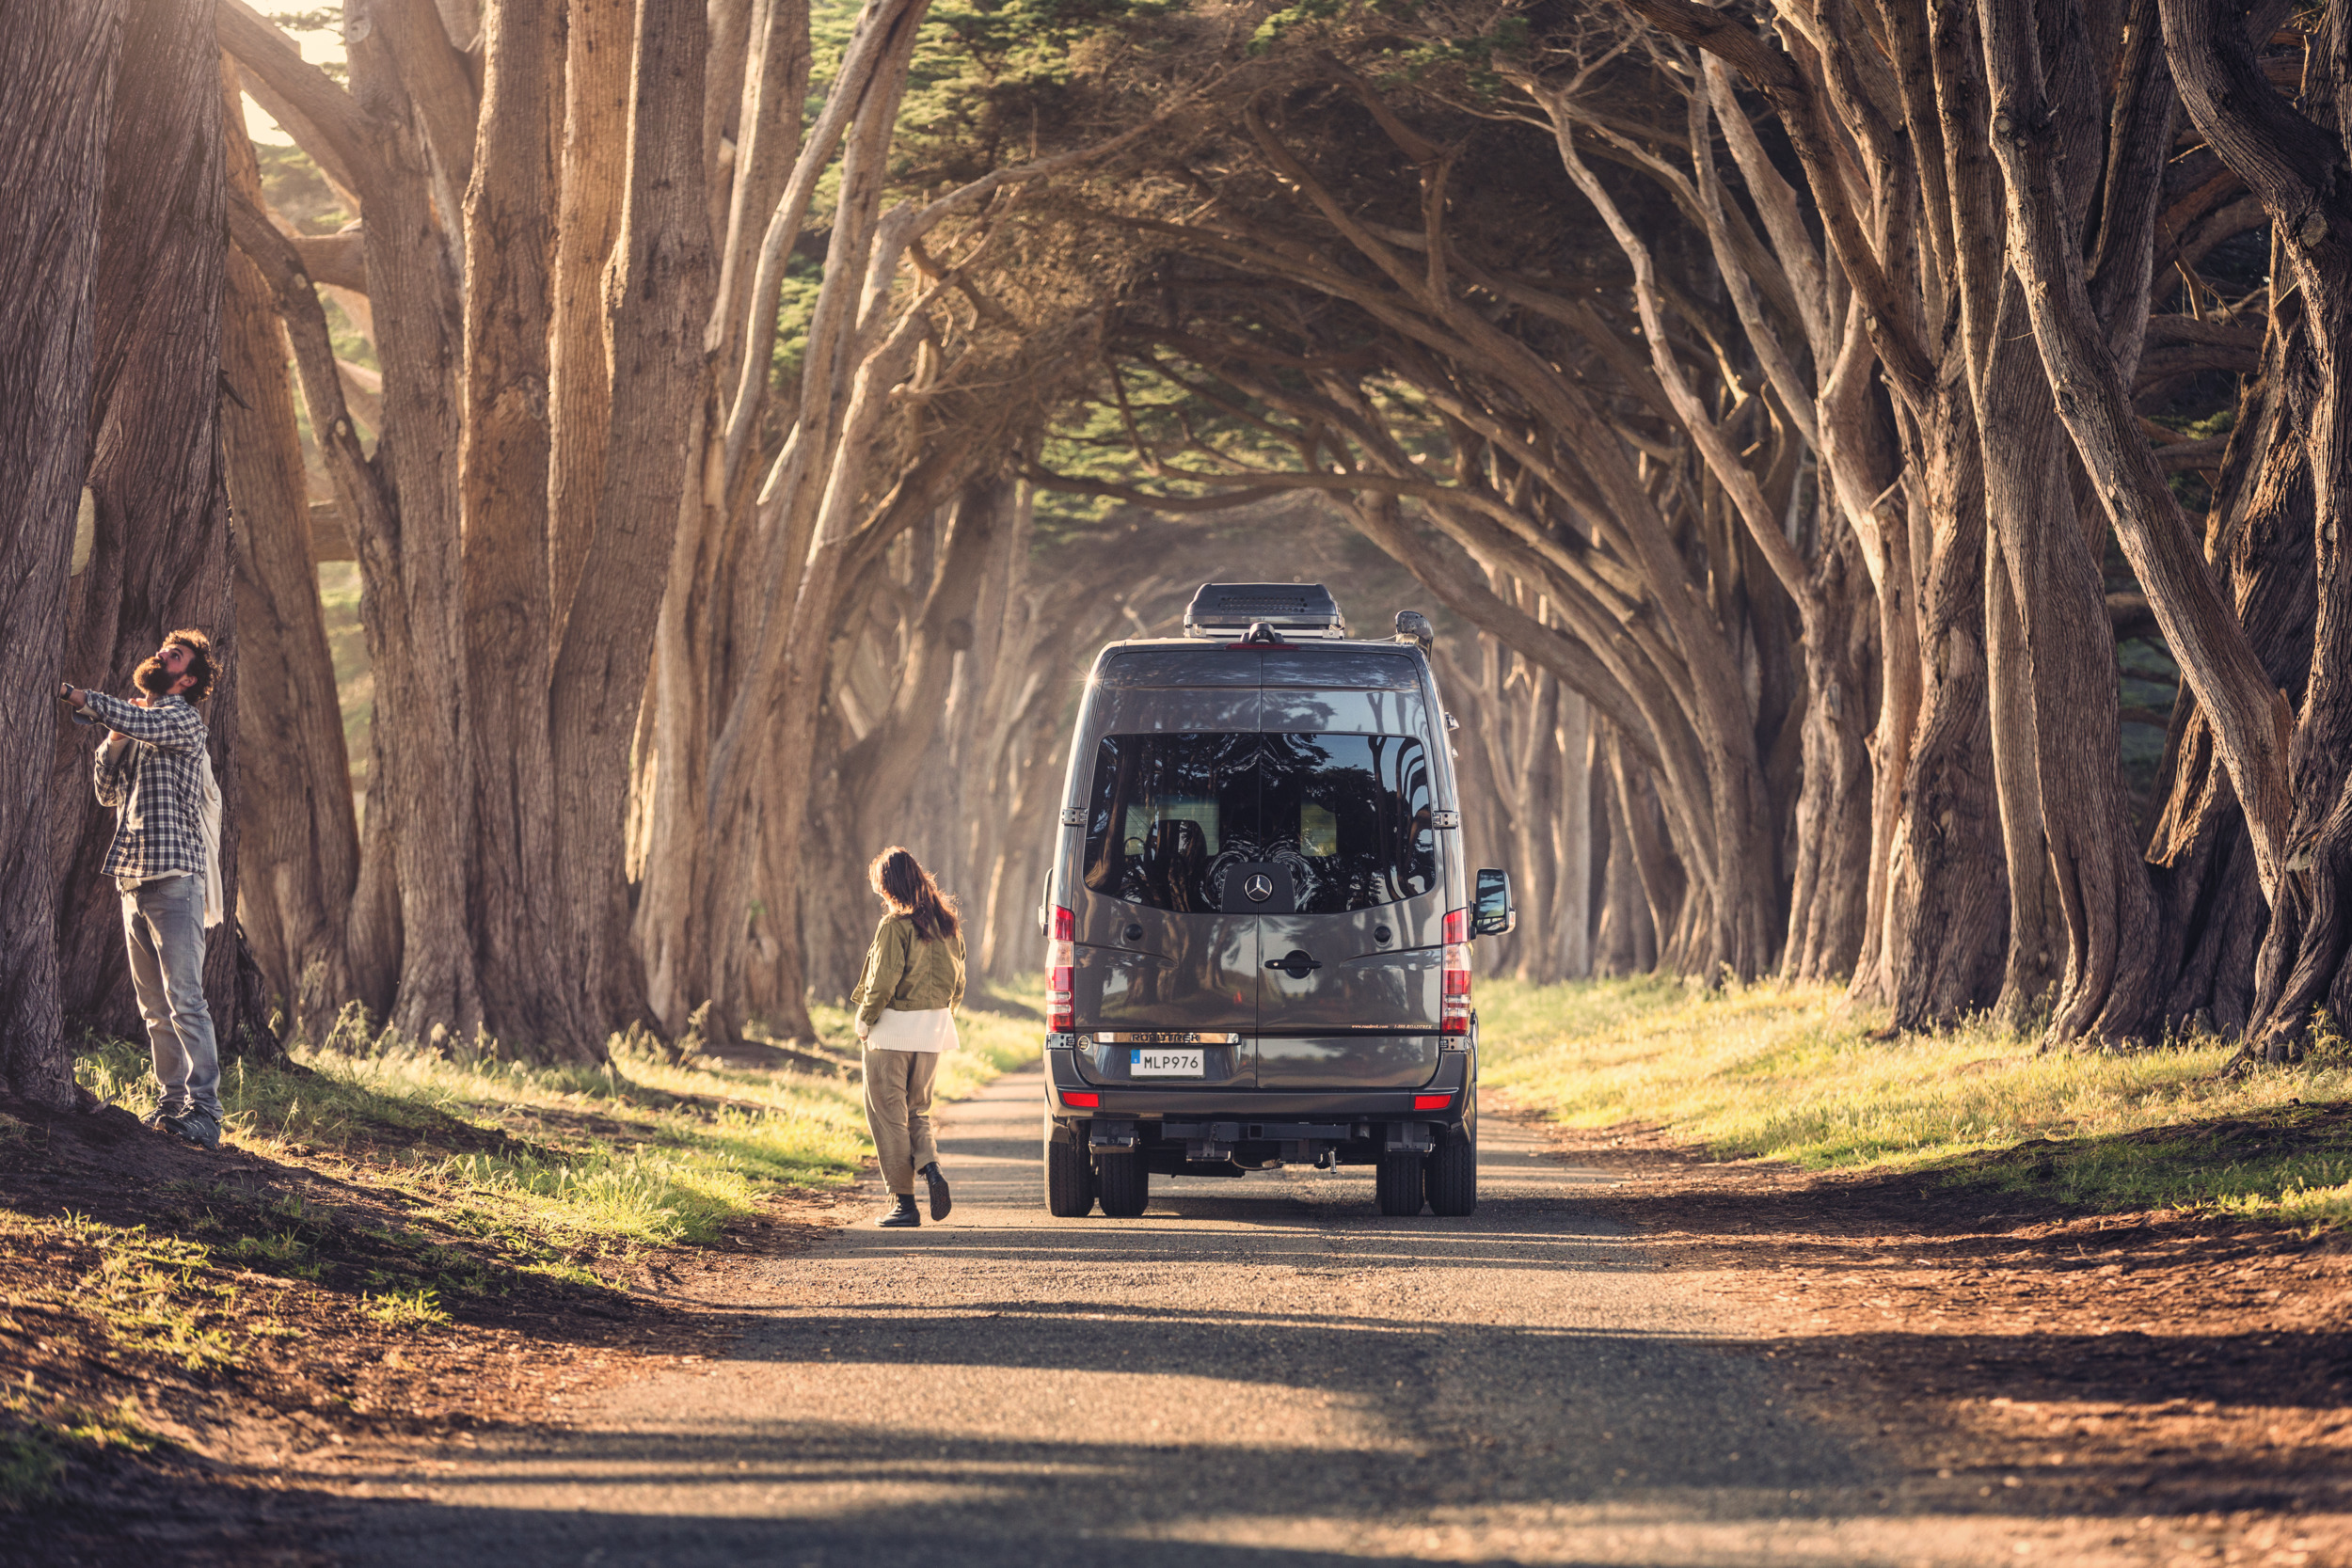 Dometic, RV, camper van, motorhome, vacation, alley, trees, light, sun, road, drive, family, nature